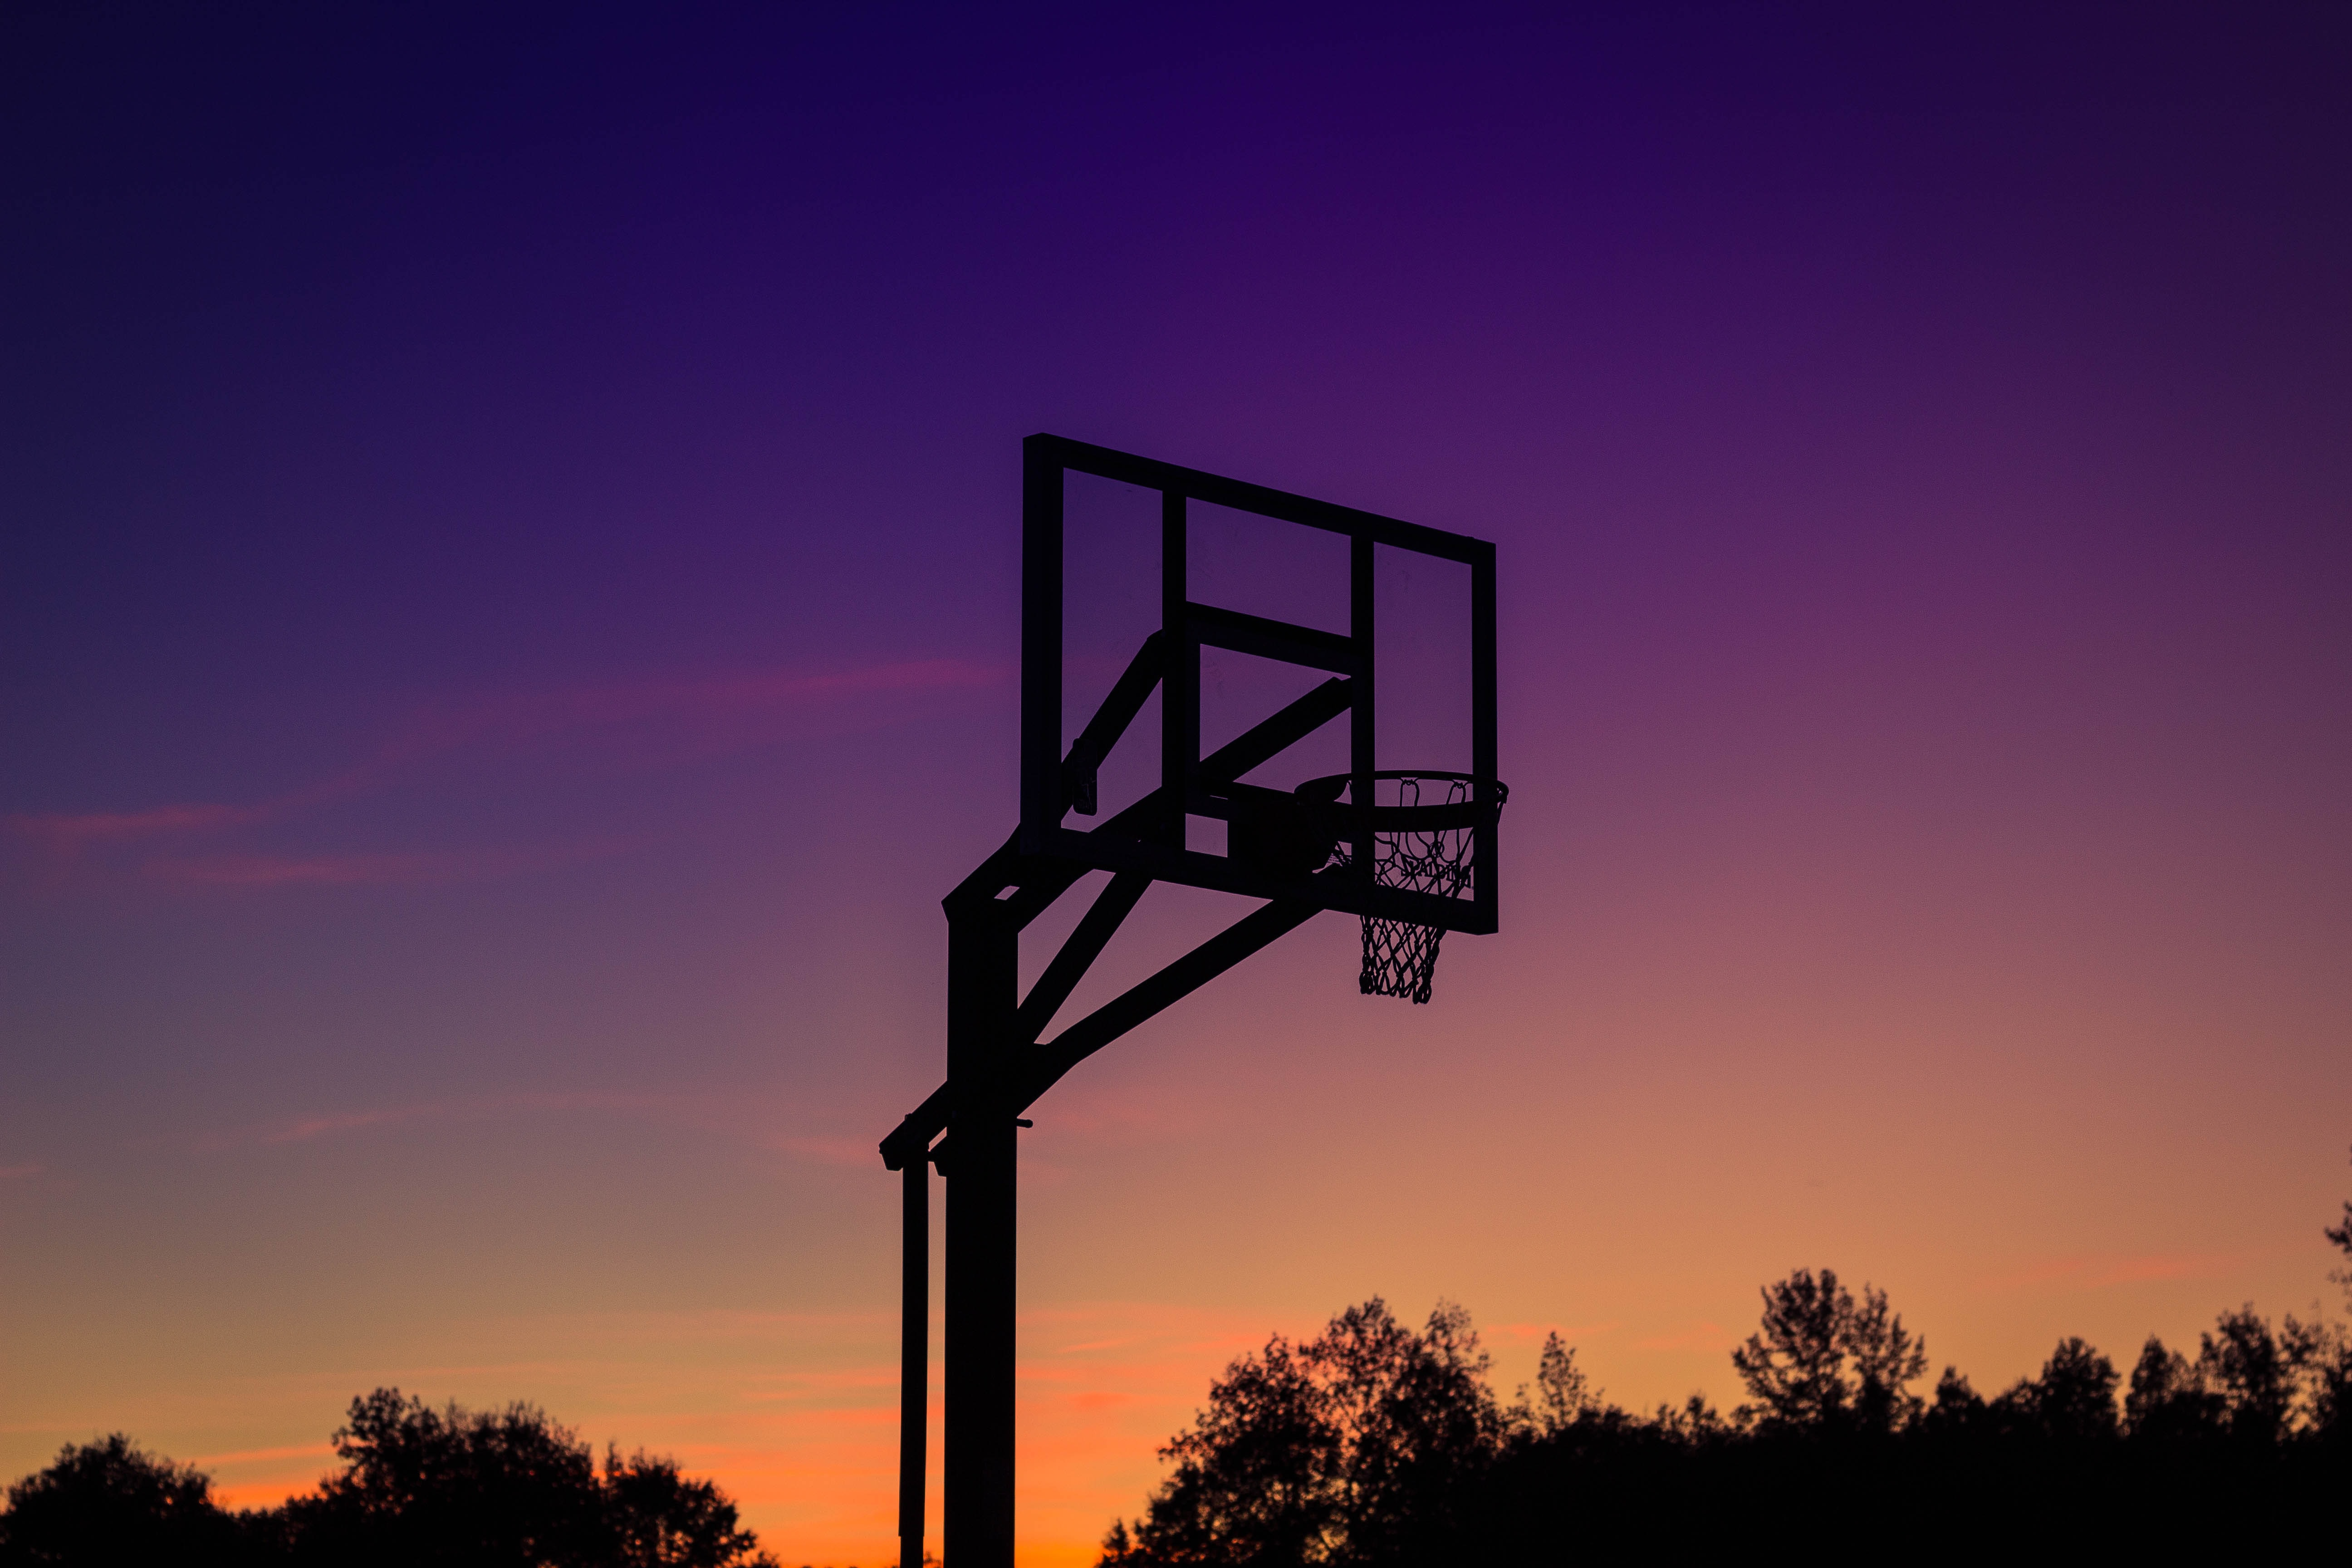 silhouette of basketball system